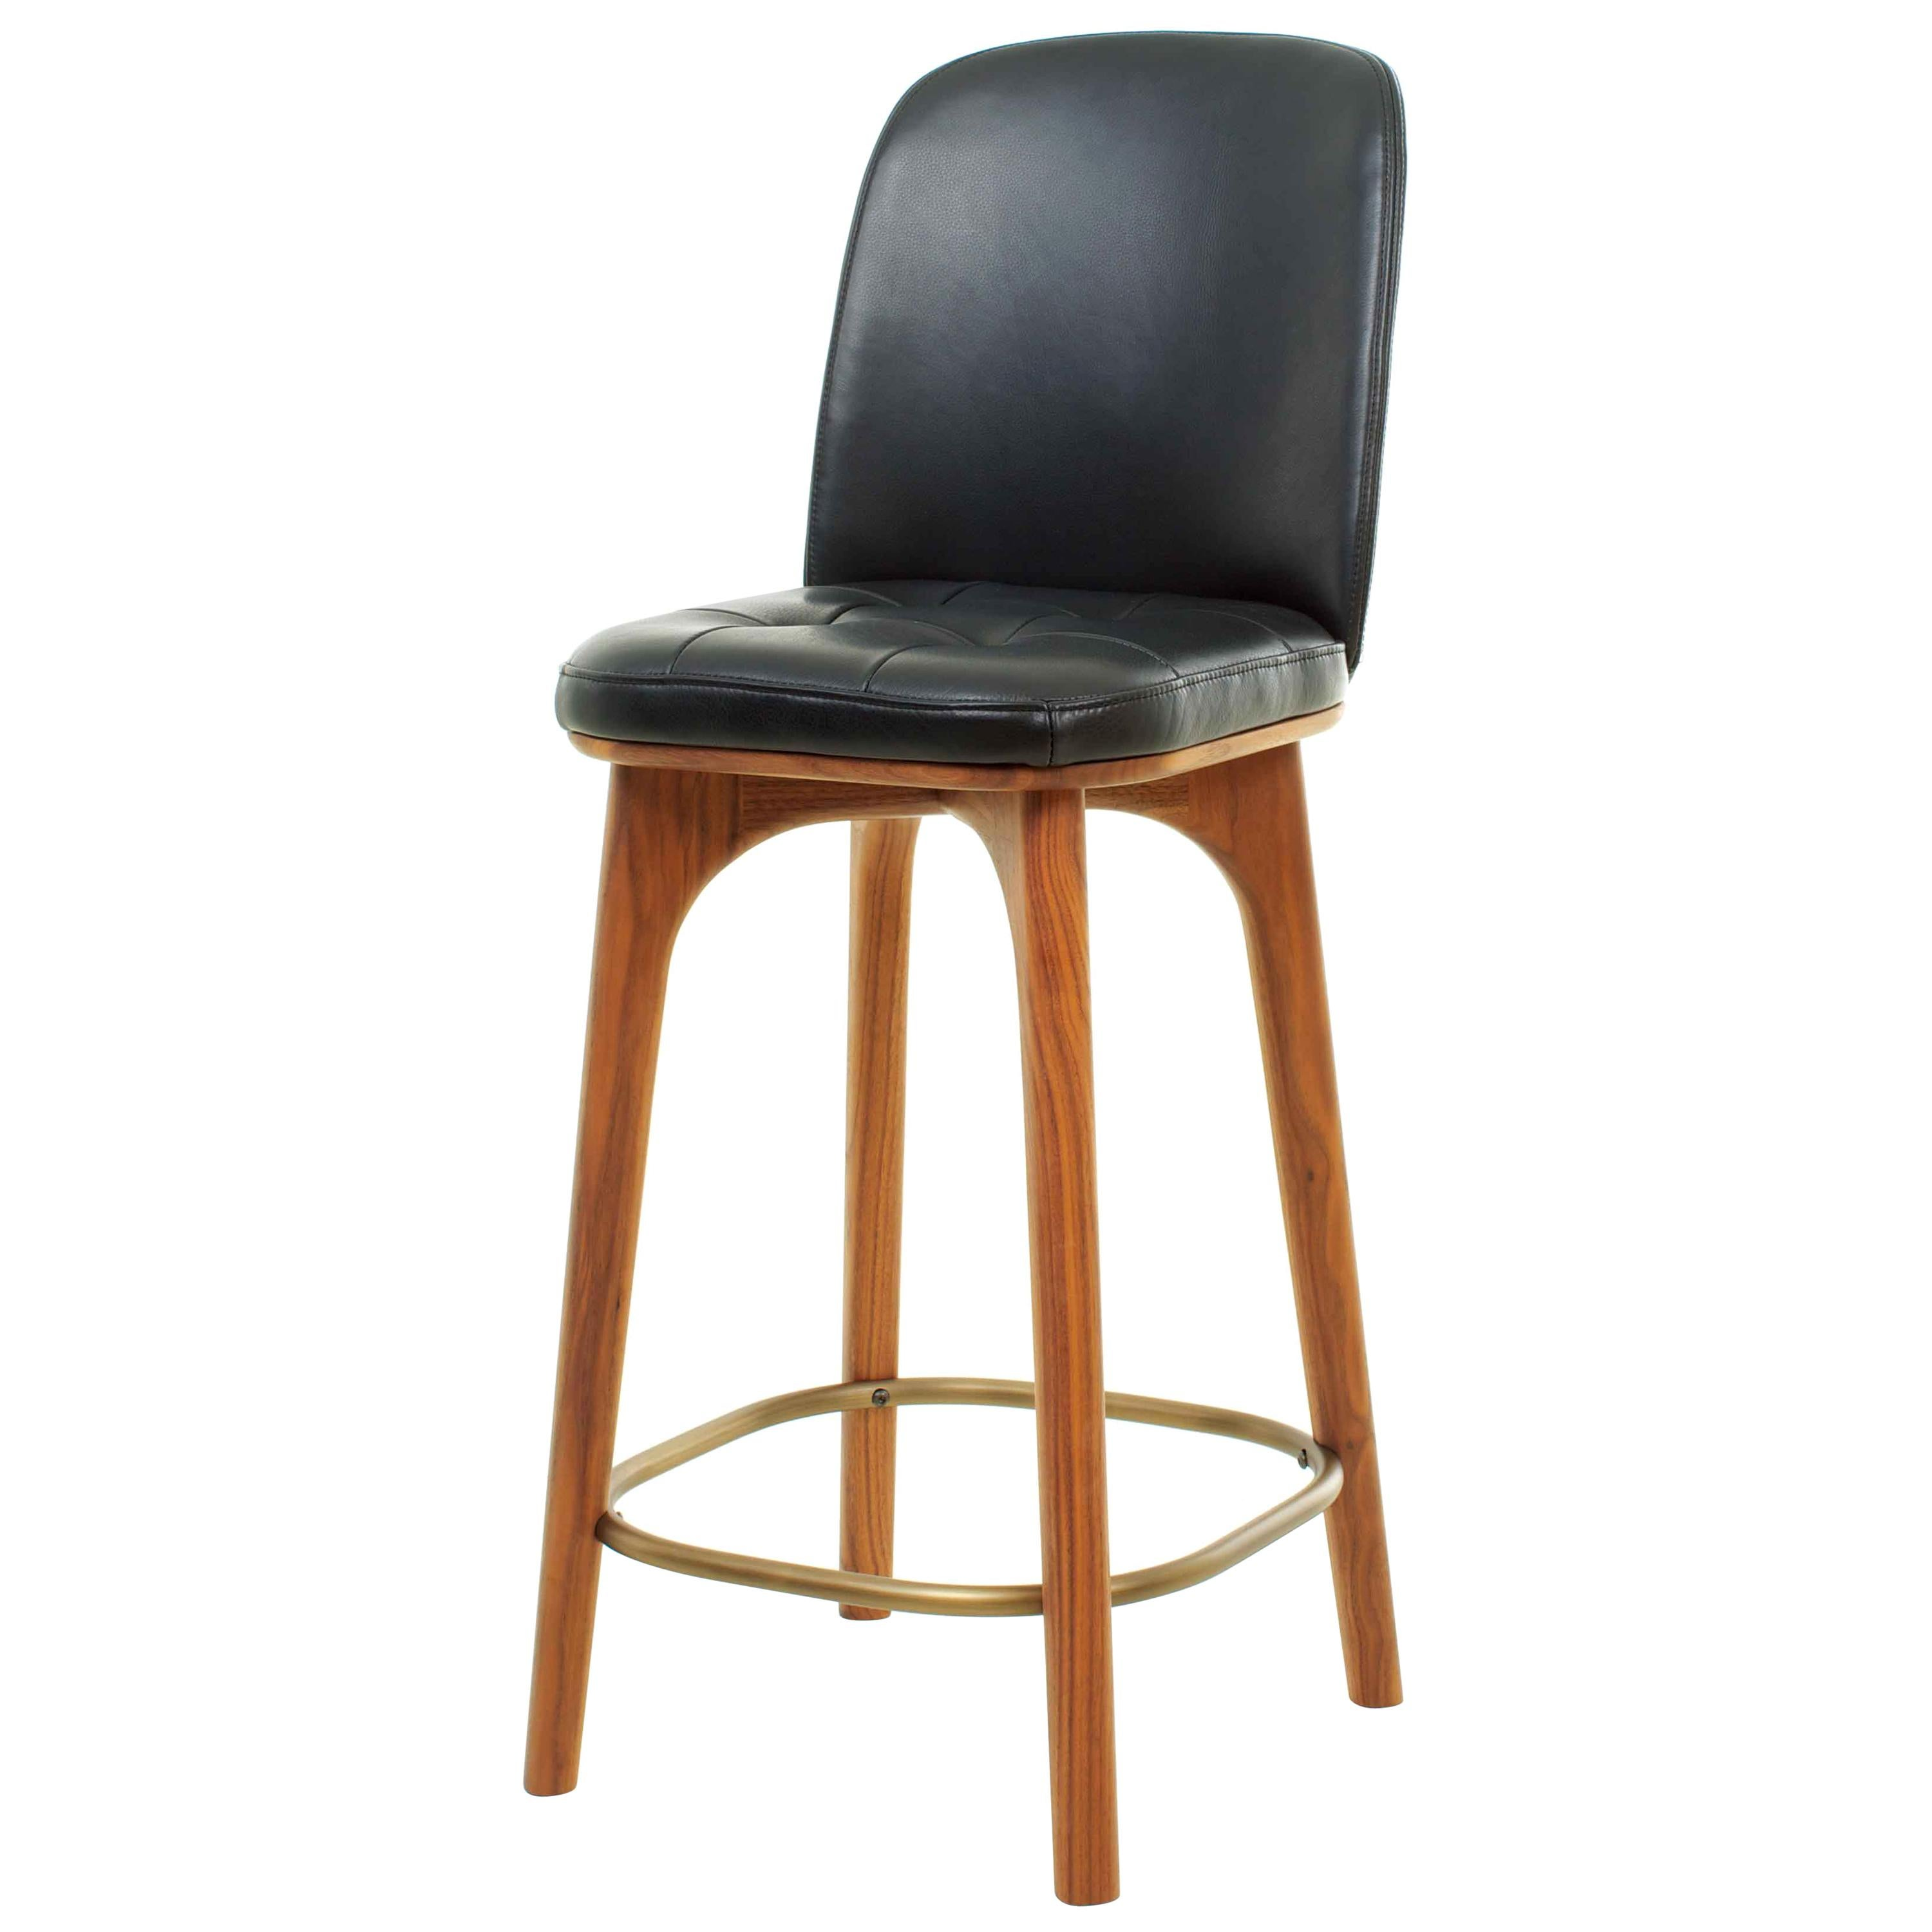 Leather and Walnut Wood Counter Bar Stool, Utility Counter Chair